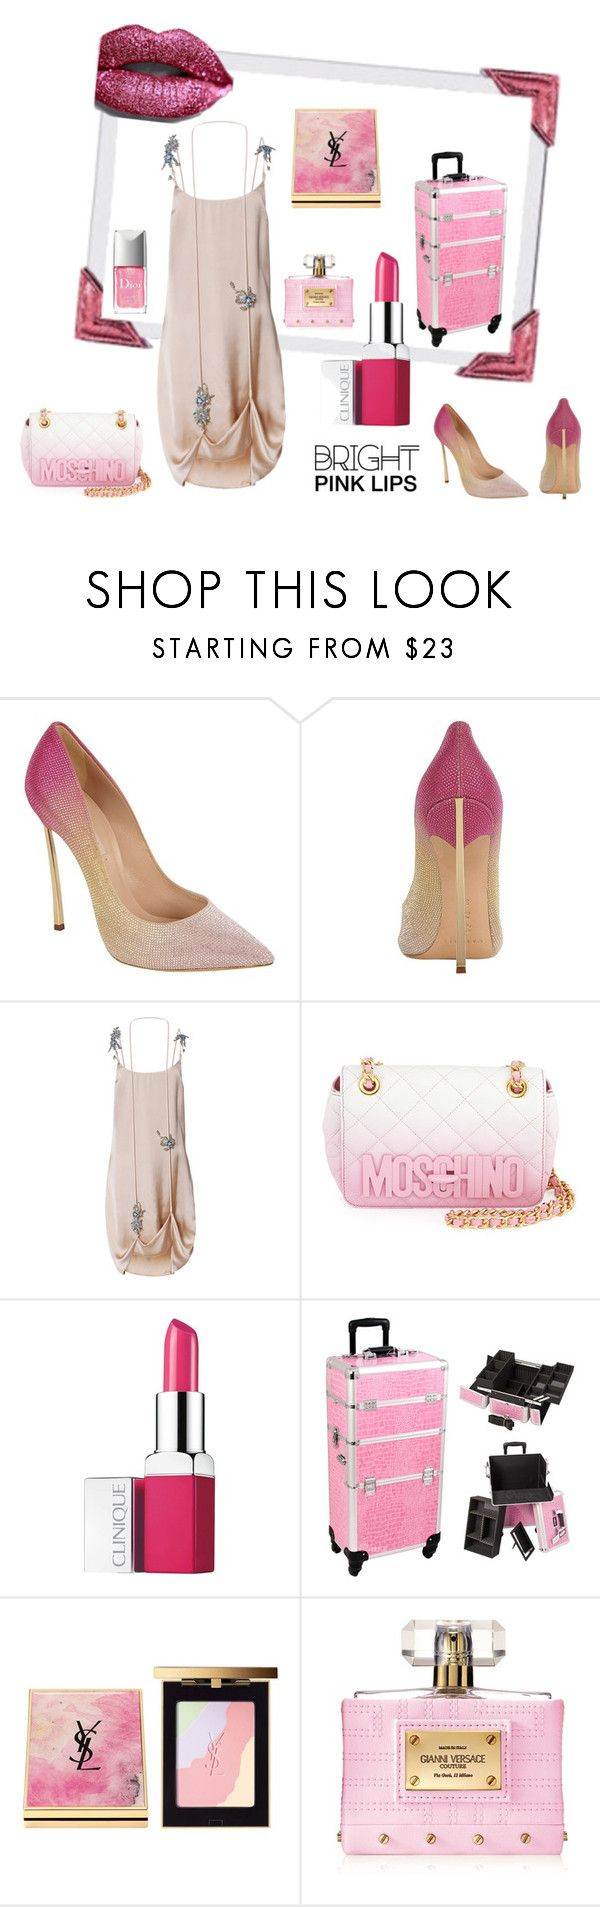 """Яркая помада в моде."" by ludmila-petrova ❤ liked on Polyvore featuring beauty, Casadei, Christopher Kane, Moschino, Clinique, Yves Saint Laurent and Versace"